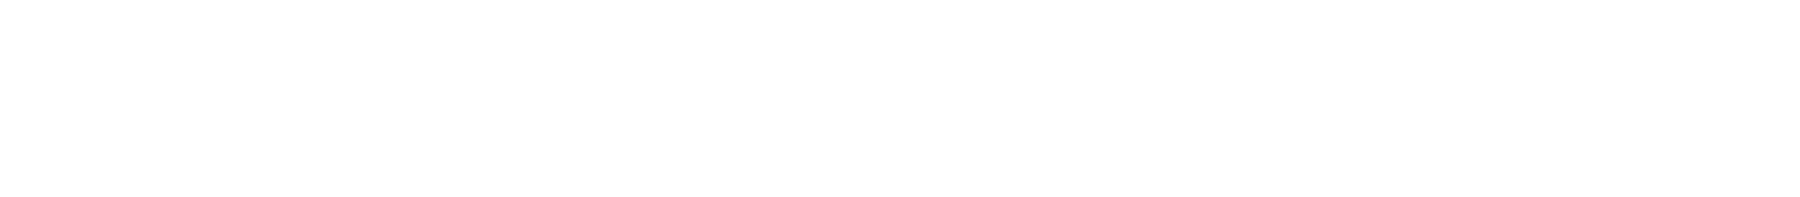 British Columbia Society of Landscape Architects